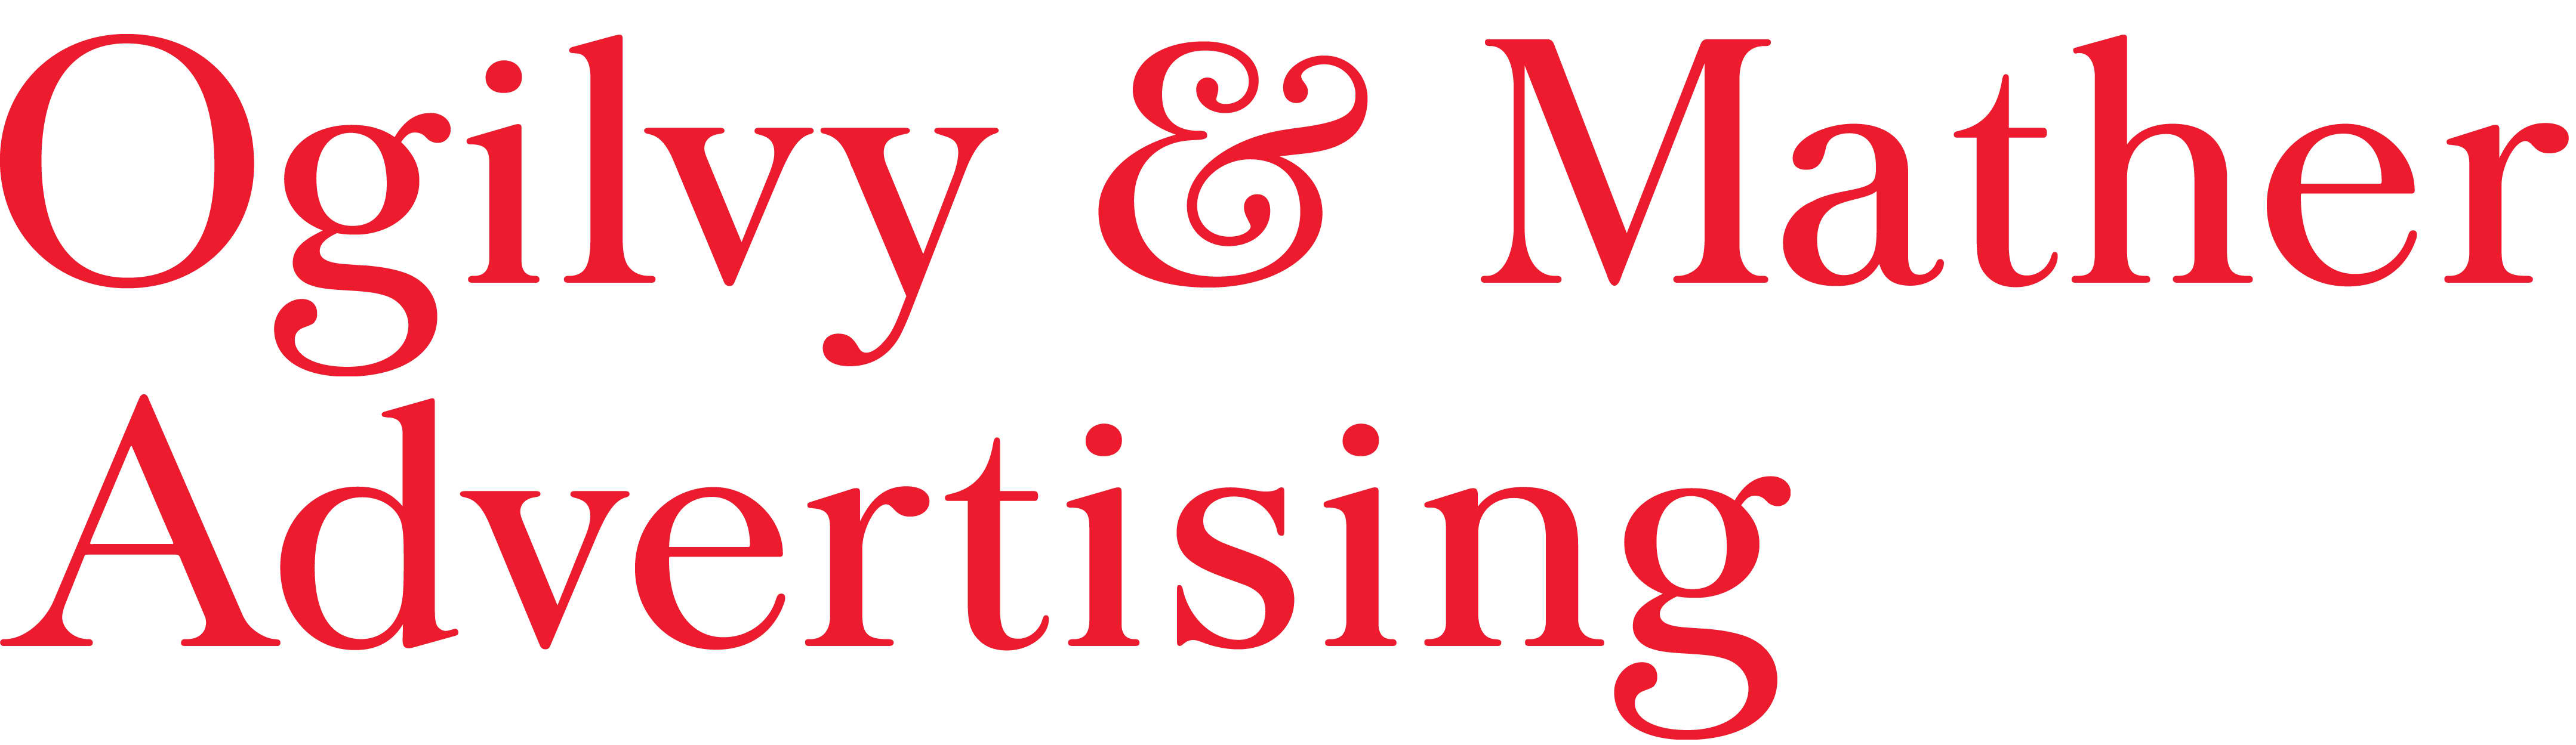 Regional Senior Planner, Ogilvy & Mather Advertising